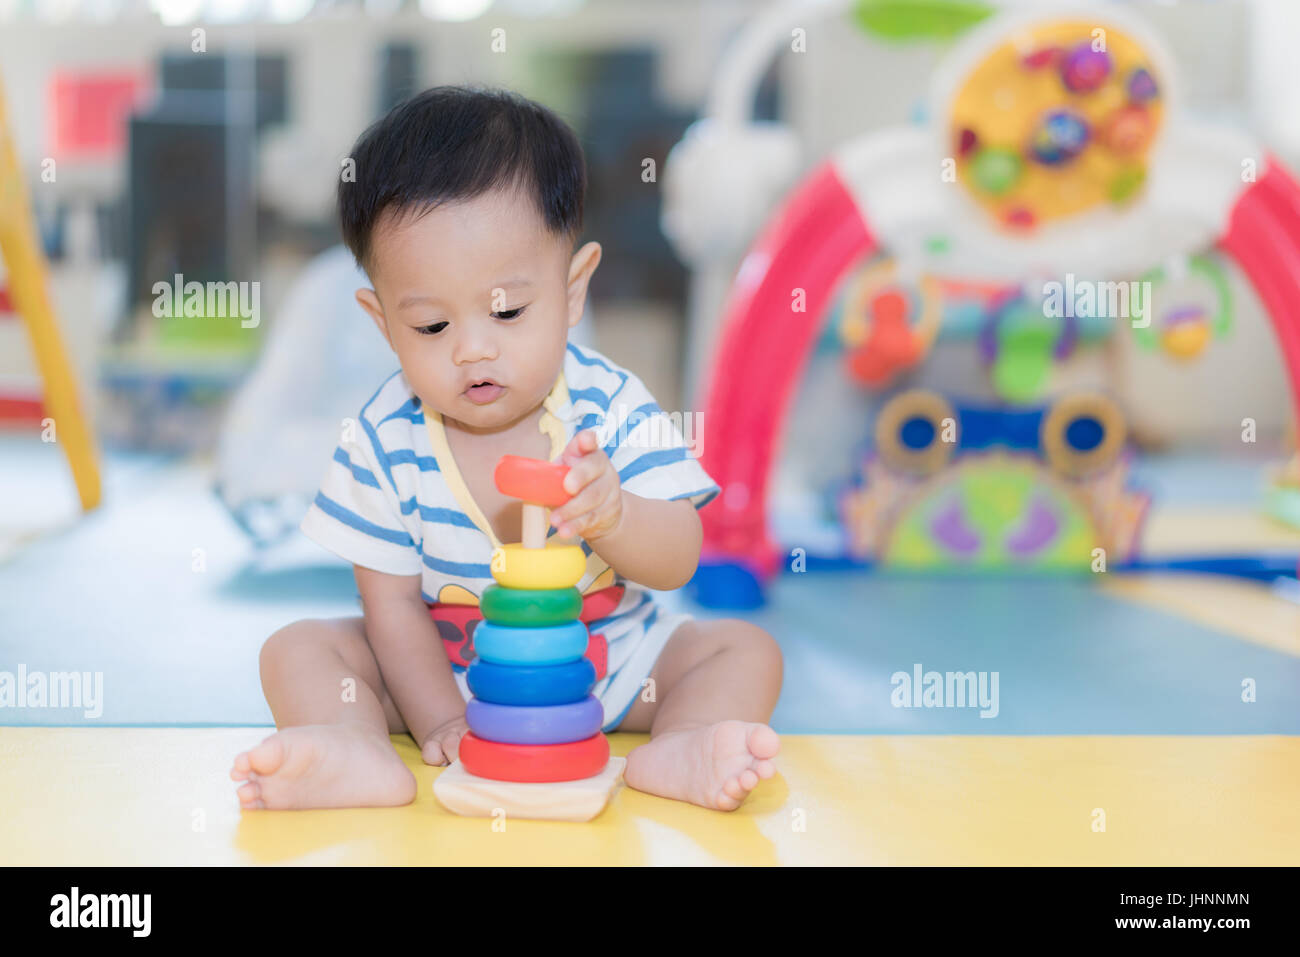 Adorable Asian baby boy 9 months sitting and playing with color developmental toys in kids room at home. - Stock Image